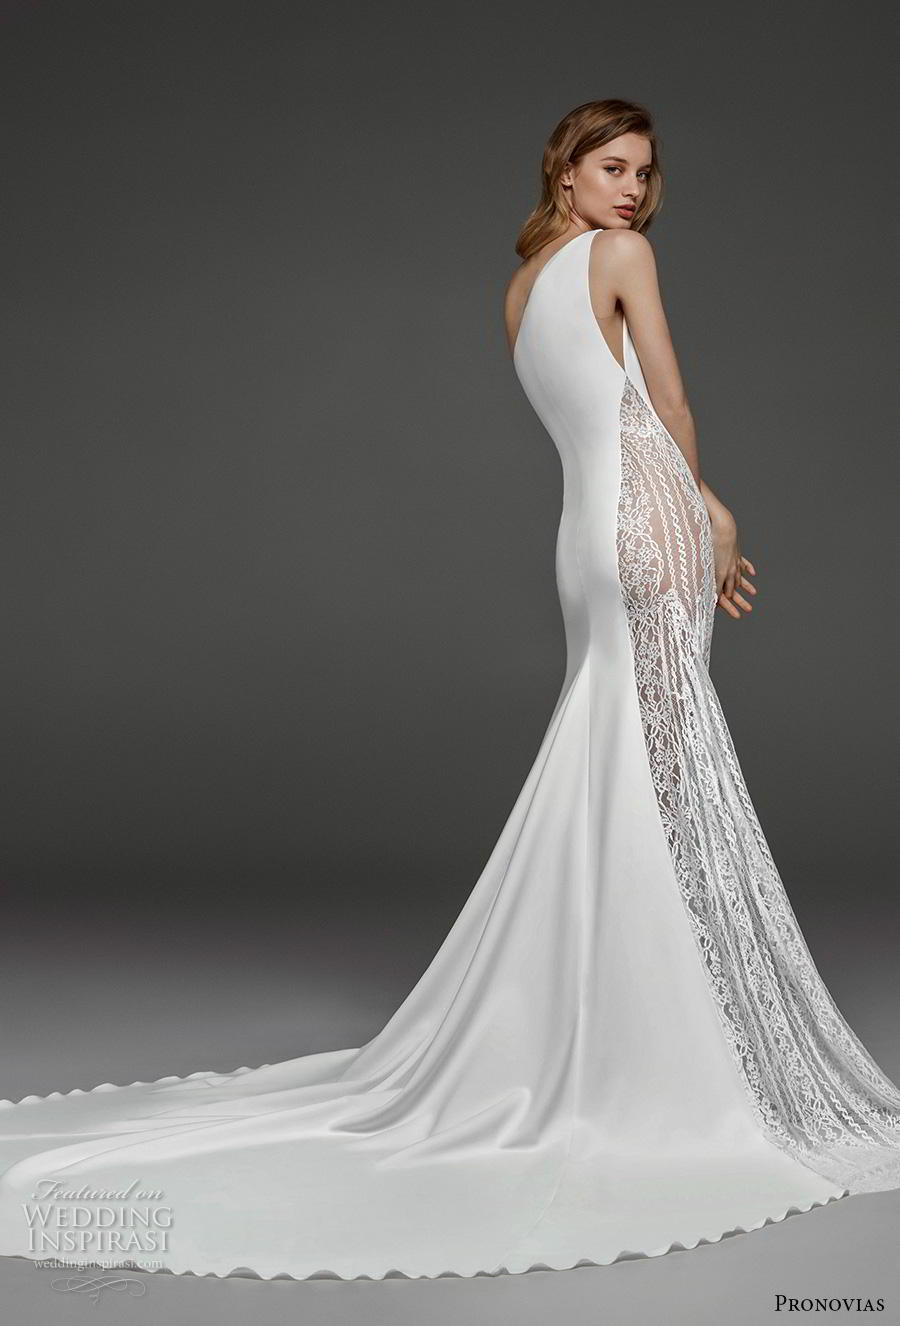 atelier pronovias 2019 bridal sleeveless one shoulder neckline simple minimalist slit skirt modified a  line wedding dress chapel train (13) bv